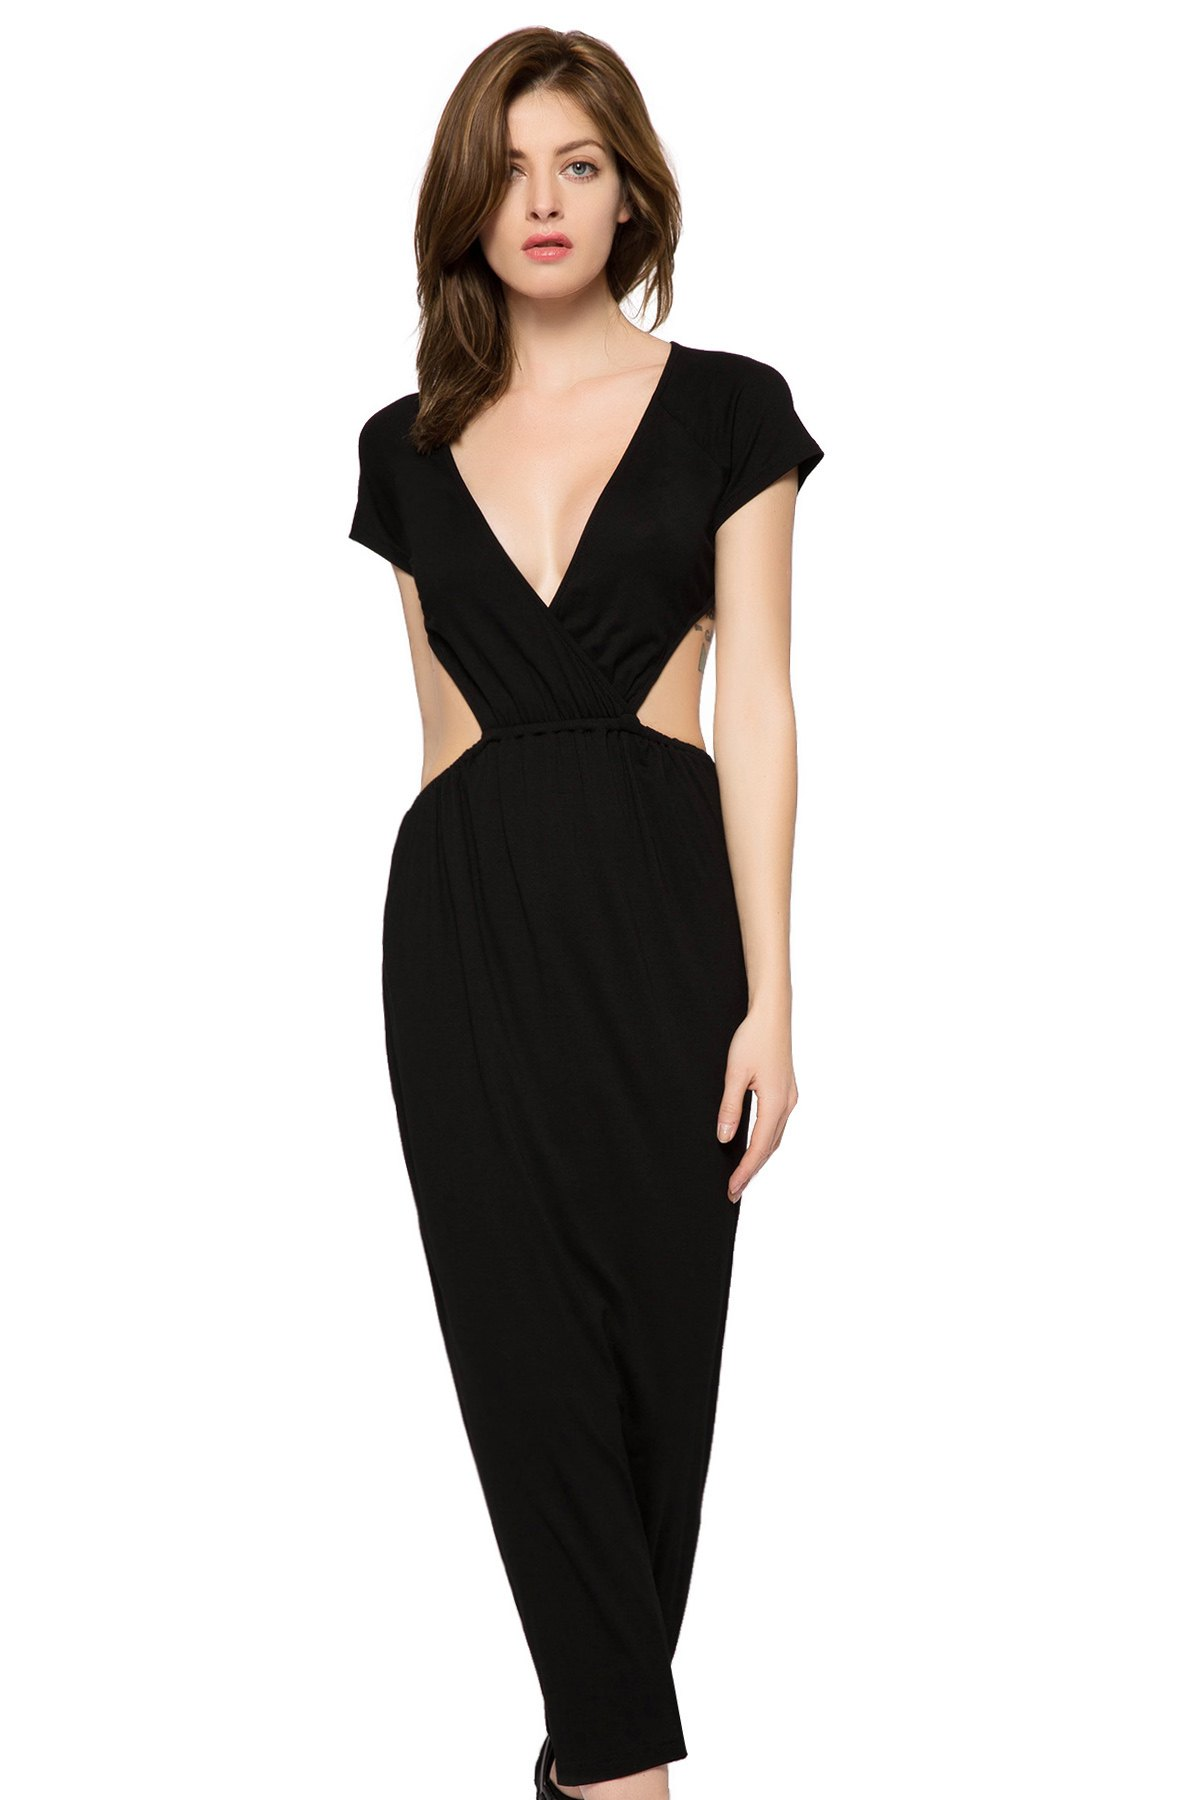 Sexy dresses for everyday discount prices. We have a huge selection of formal wear evening dresses, different styles of cheap formal dresses for sale! English. English; Sheath Off-the-Shoulder Short Sleeves Floor-Length Evening Dress. High-Neck Mermaid Appliques Backless Lace-up Long Evening Dress.